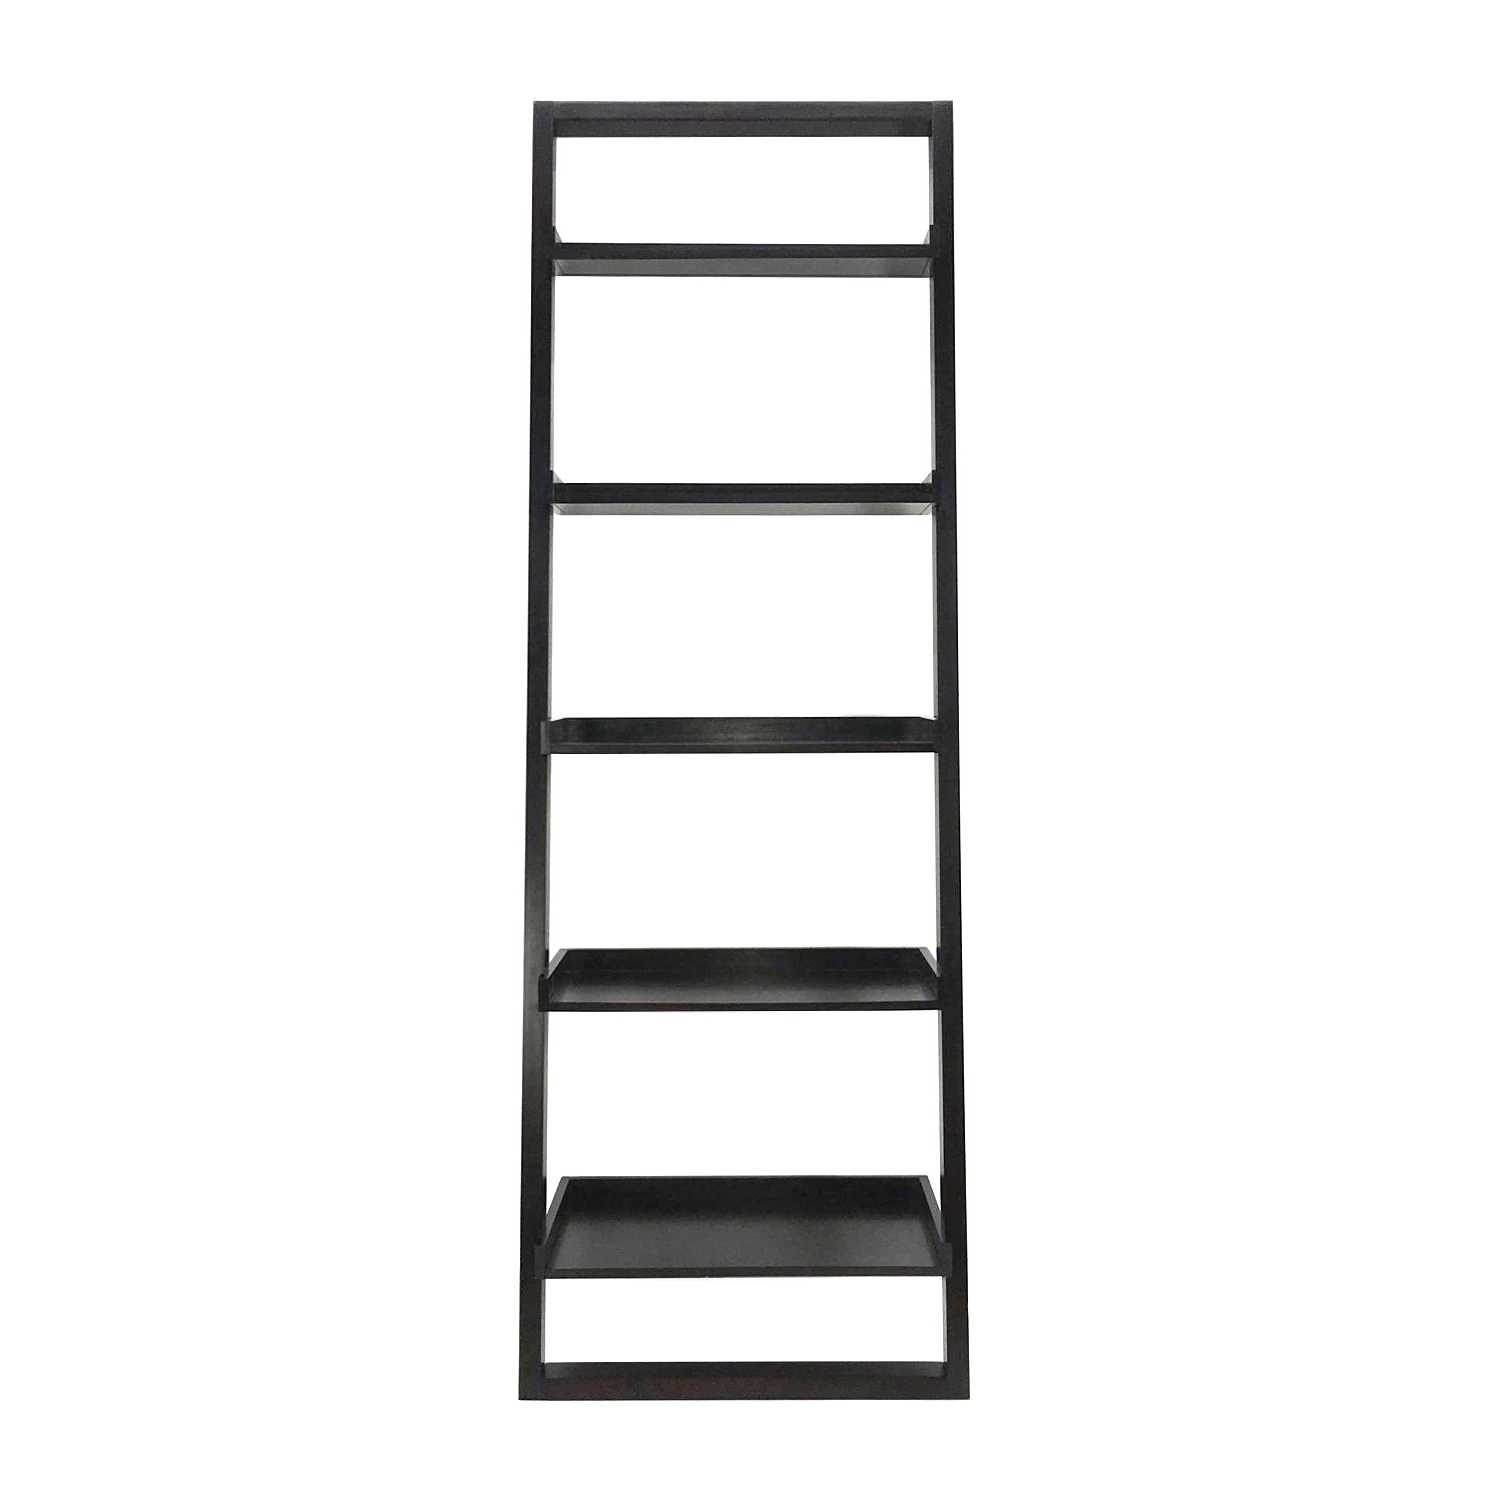 [%60% Off – Crate And Barrel Crate & Barrel Wide Leaning Shelves Intended For 2018 Crate And Barrel Leaning Bookcases|Crate And Barrel Leaning Bookcases With Regard To Most Recent 60% Off – Crate And Barrel Crate & Barrel Wide Leaning Shelves|Current Crate And Barrel Leaning Bookcases Inside 60% Off – Crate And Barrel Crate & Barrel Wide Leaning Shelves|Most Recently Released 60% Off – Crate And Barrel Crate & Barrel Wide Leaning Shelves With Regard To Crate And Barrel Leaning Bookcases%] (View 3 of 15)